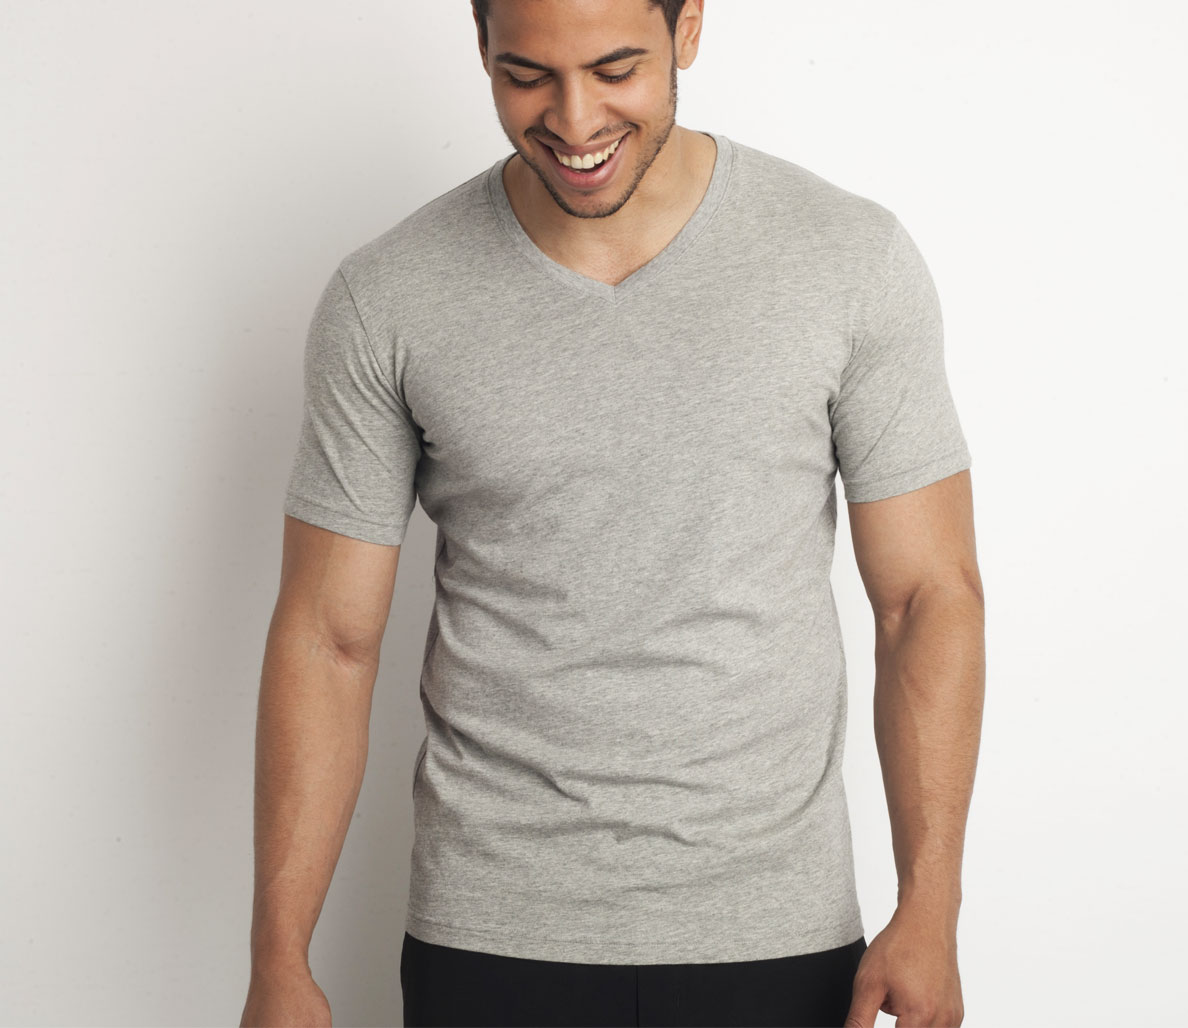 a2ccf88ff908 The V-Neck T. UniQlo (The V-Neck T) Supima Cotton V Neck Short Sleeve T- Shirt